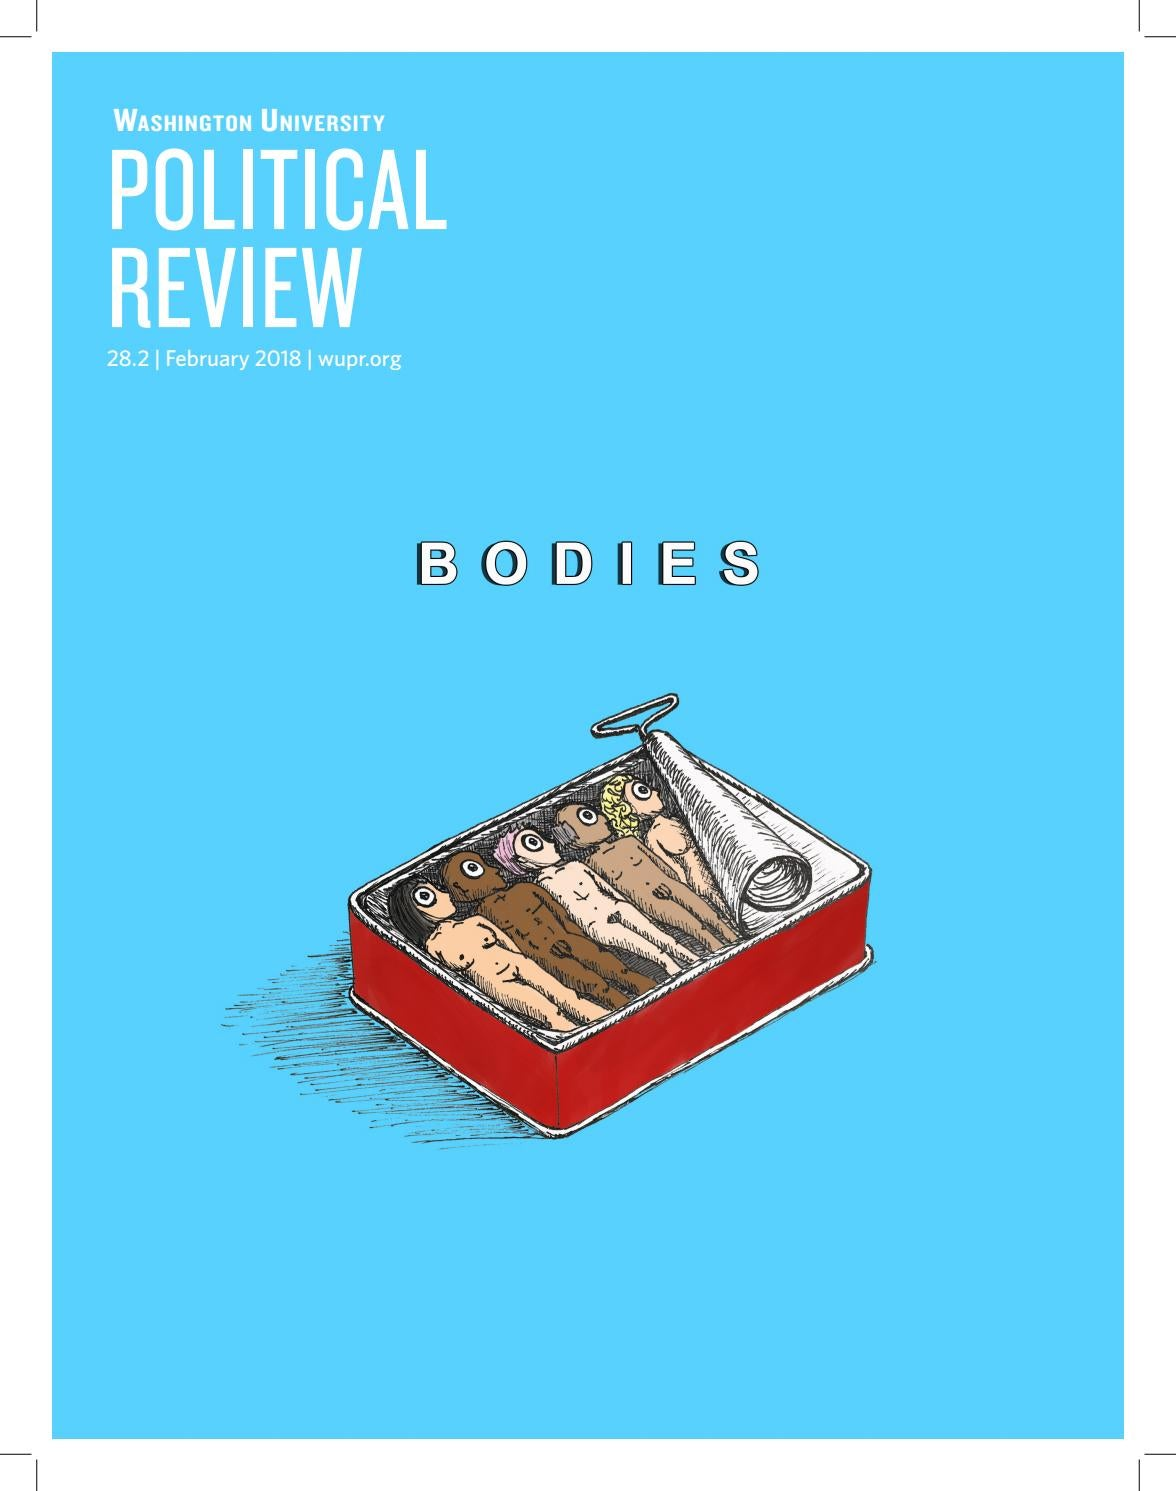 Bodies by Washington University Political Review - issuu